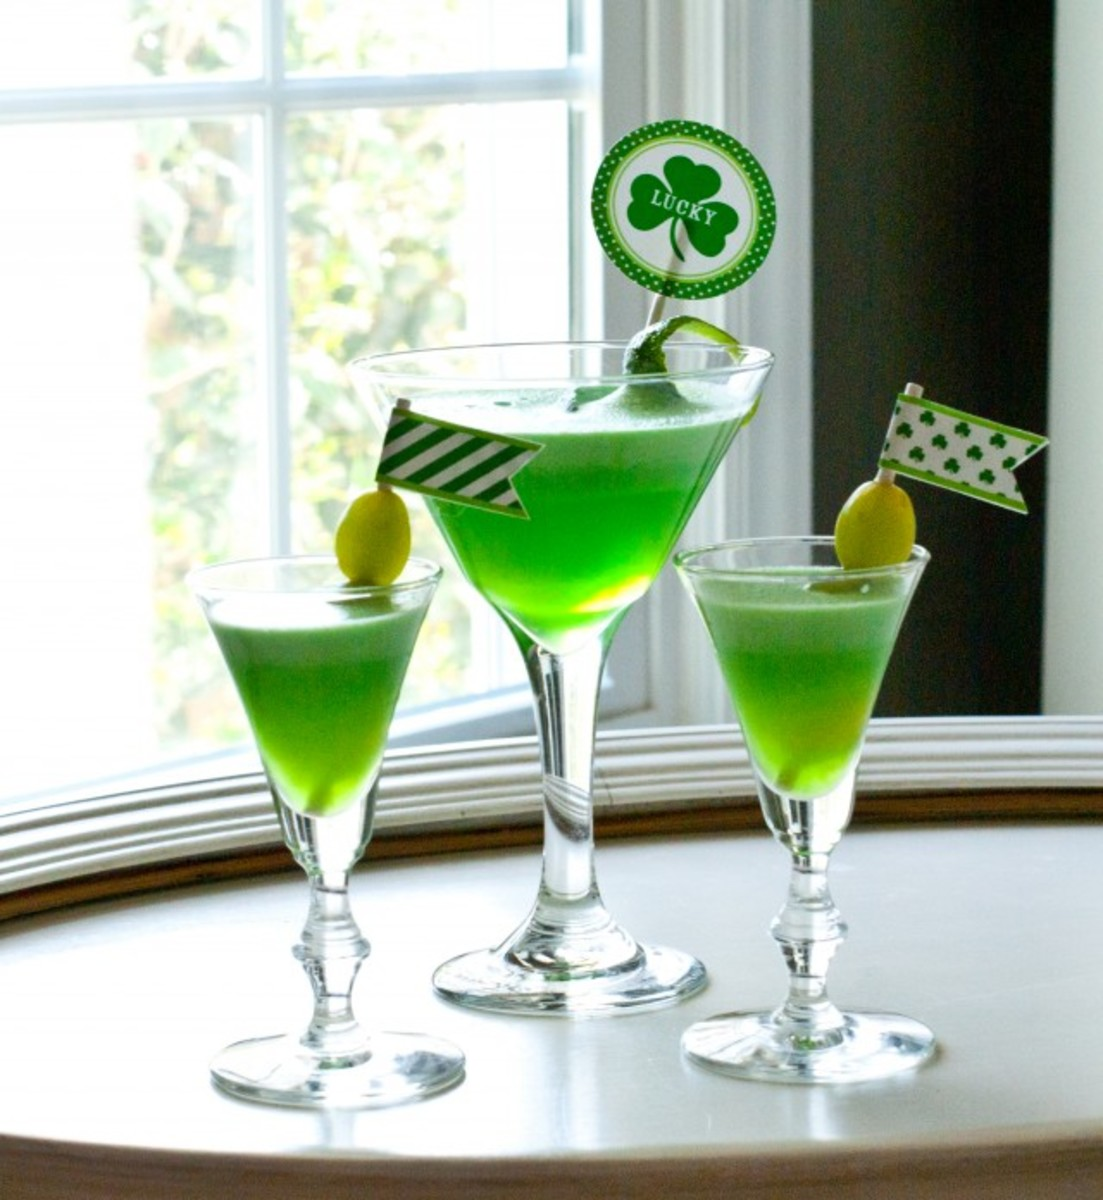 Check out Anders Ruff's version of a St. Patrick-tini.